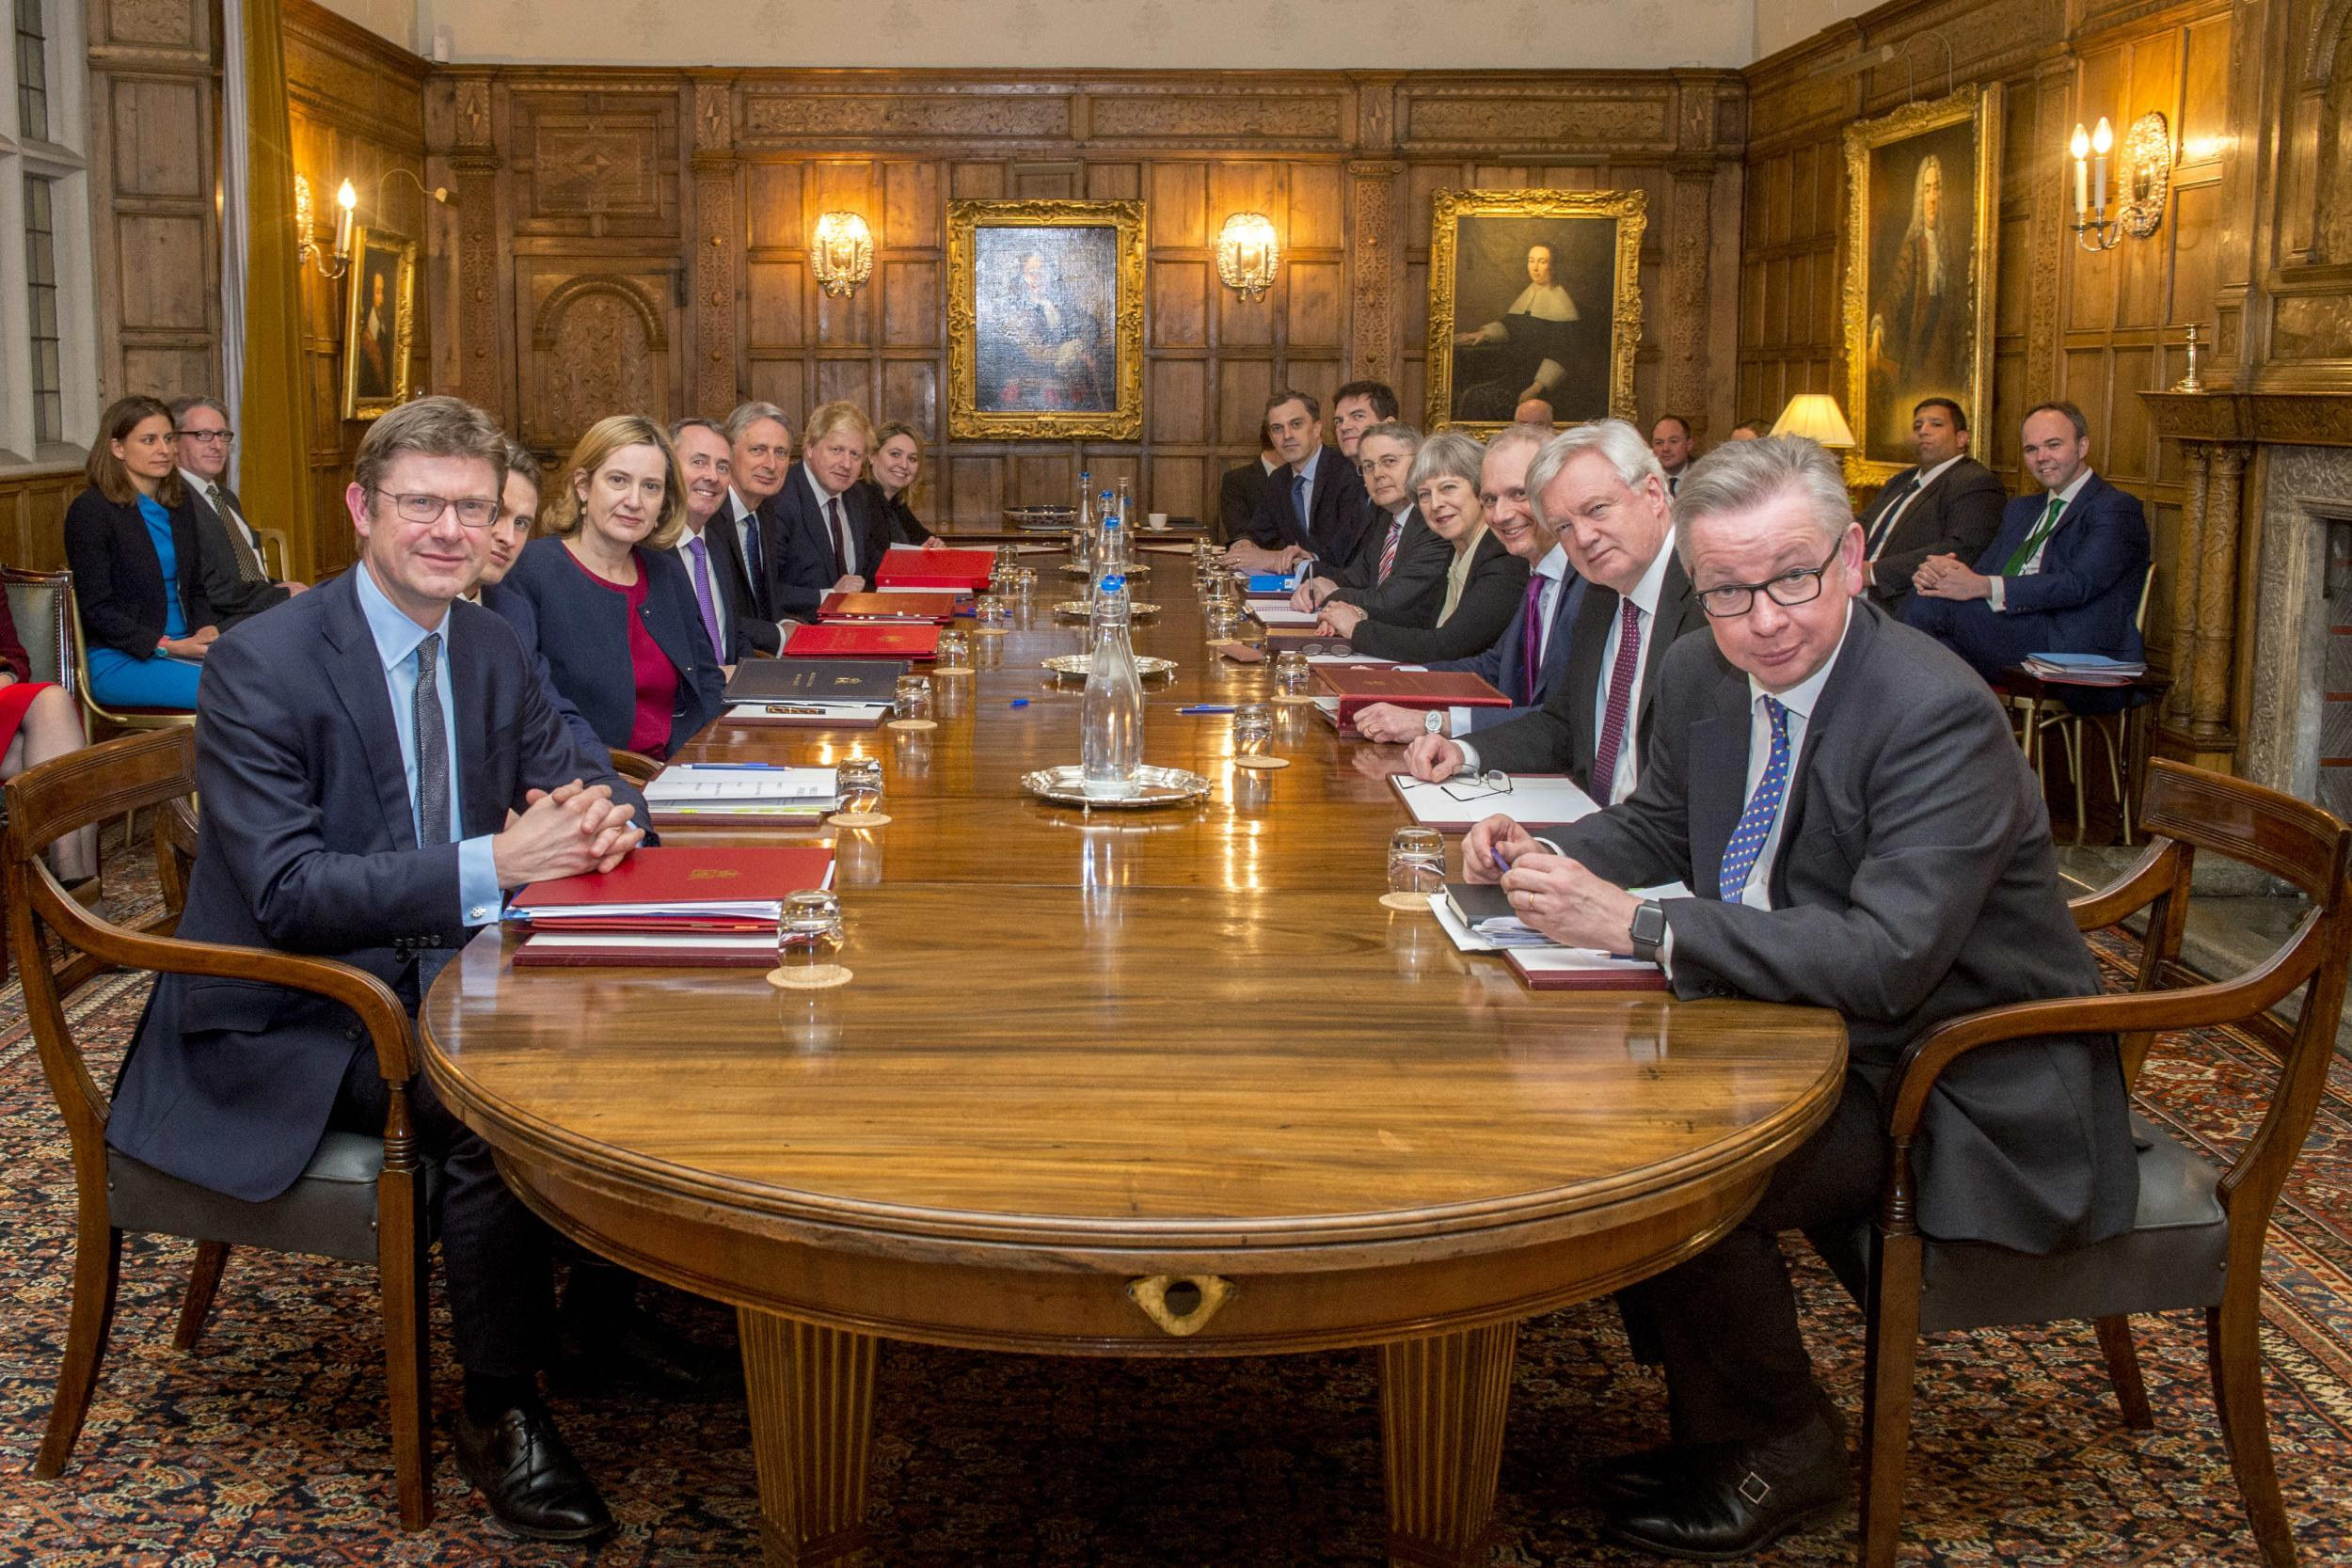 Theresa May S War Cabinet Was More Reminiscent Of A